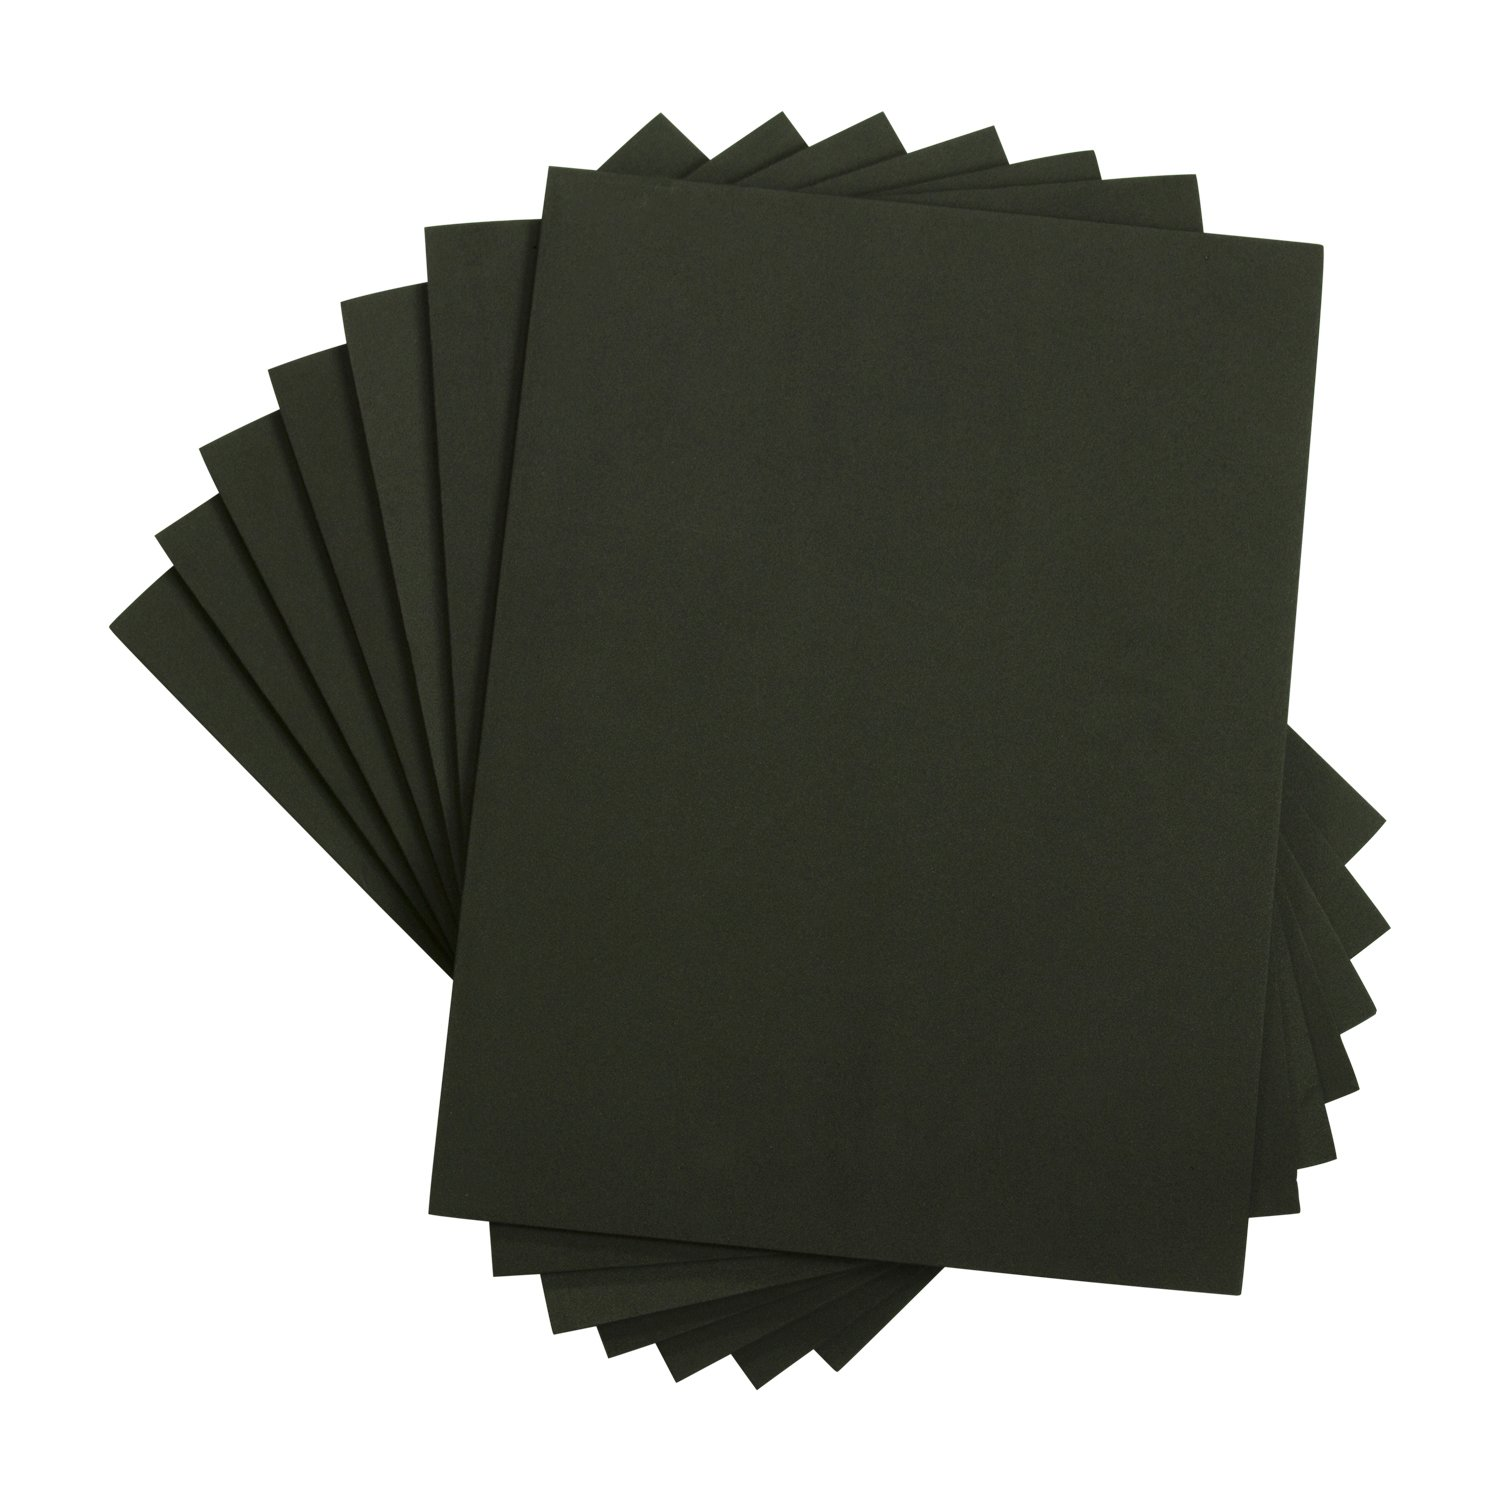 Houseables Crafts Foam Sheets, Art Supplies, EVA, 6mm Thick, Black, 9 X 12 inch, 10 Pack, Paper Scrapbooking, Cosplay, Crafting Foams Paper, Foamie Crafts, for Kids, Boy Souts, Halloween, Cushion by Houseables